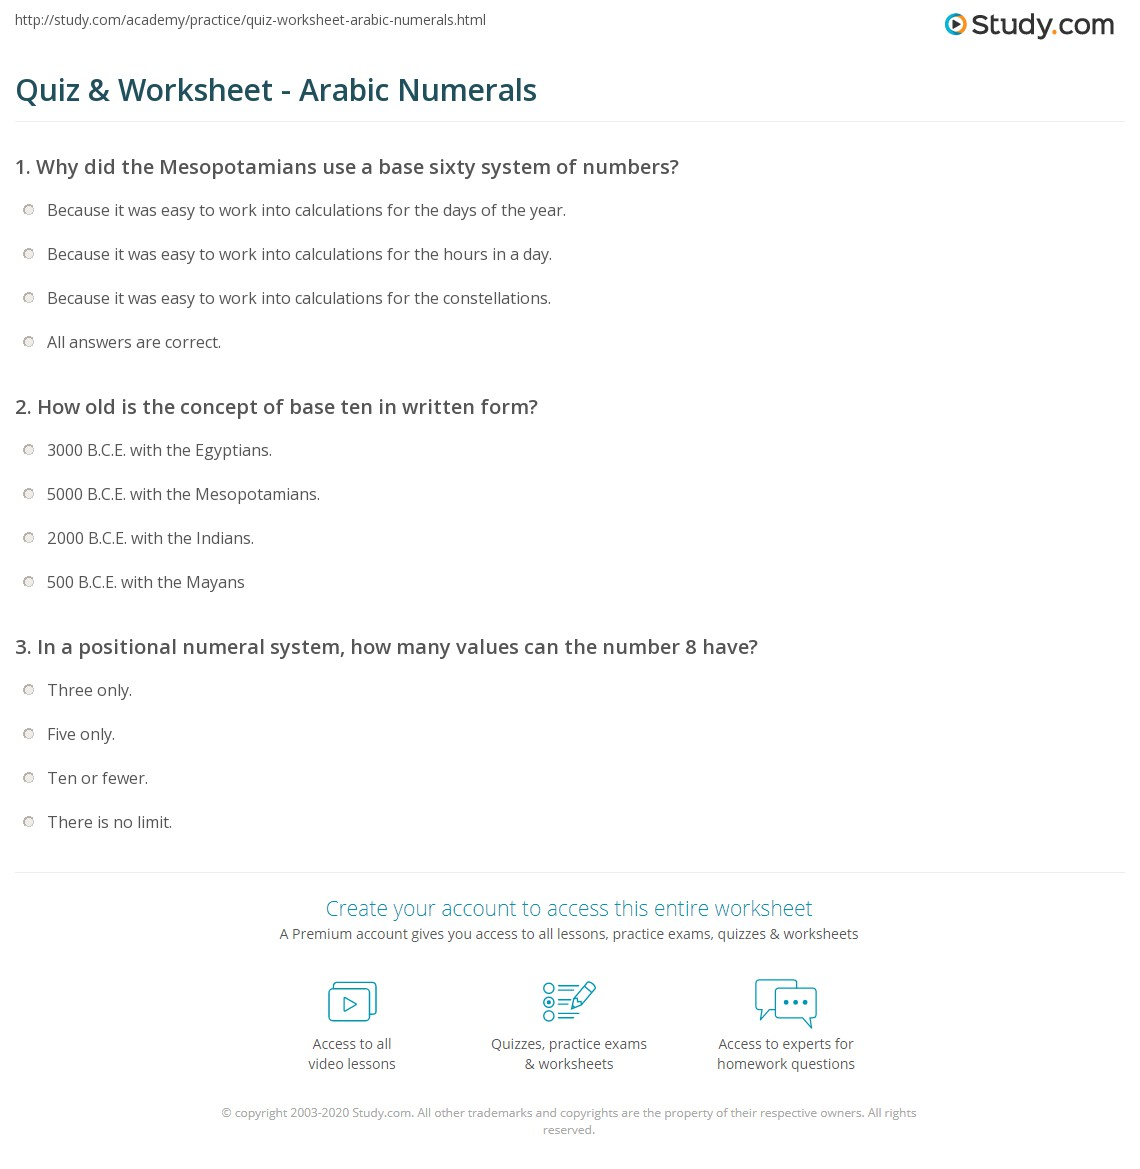 Quiz worksheet arabic numerals study print arabic numerals definition history example worksheet ibookread ePUb